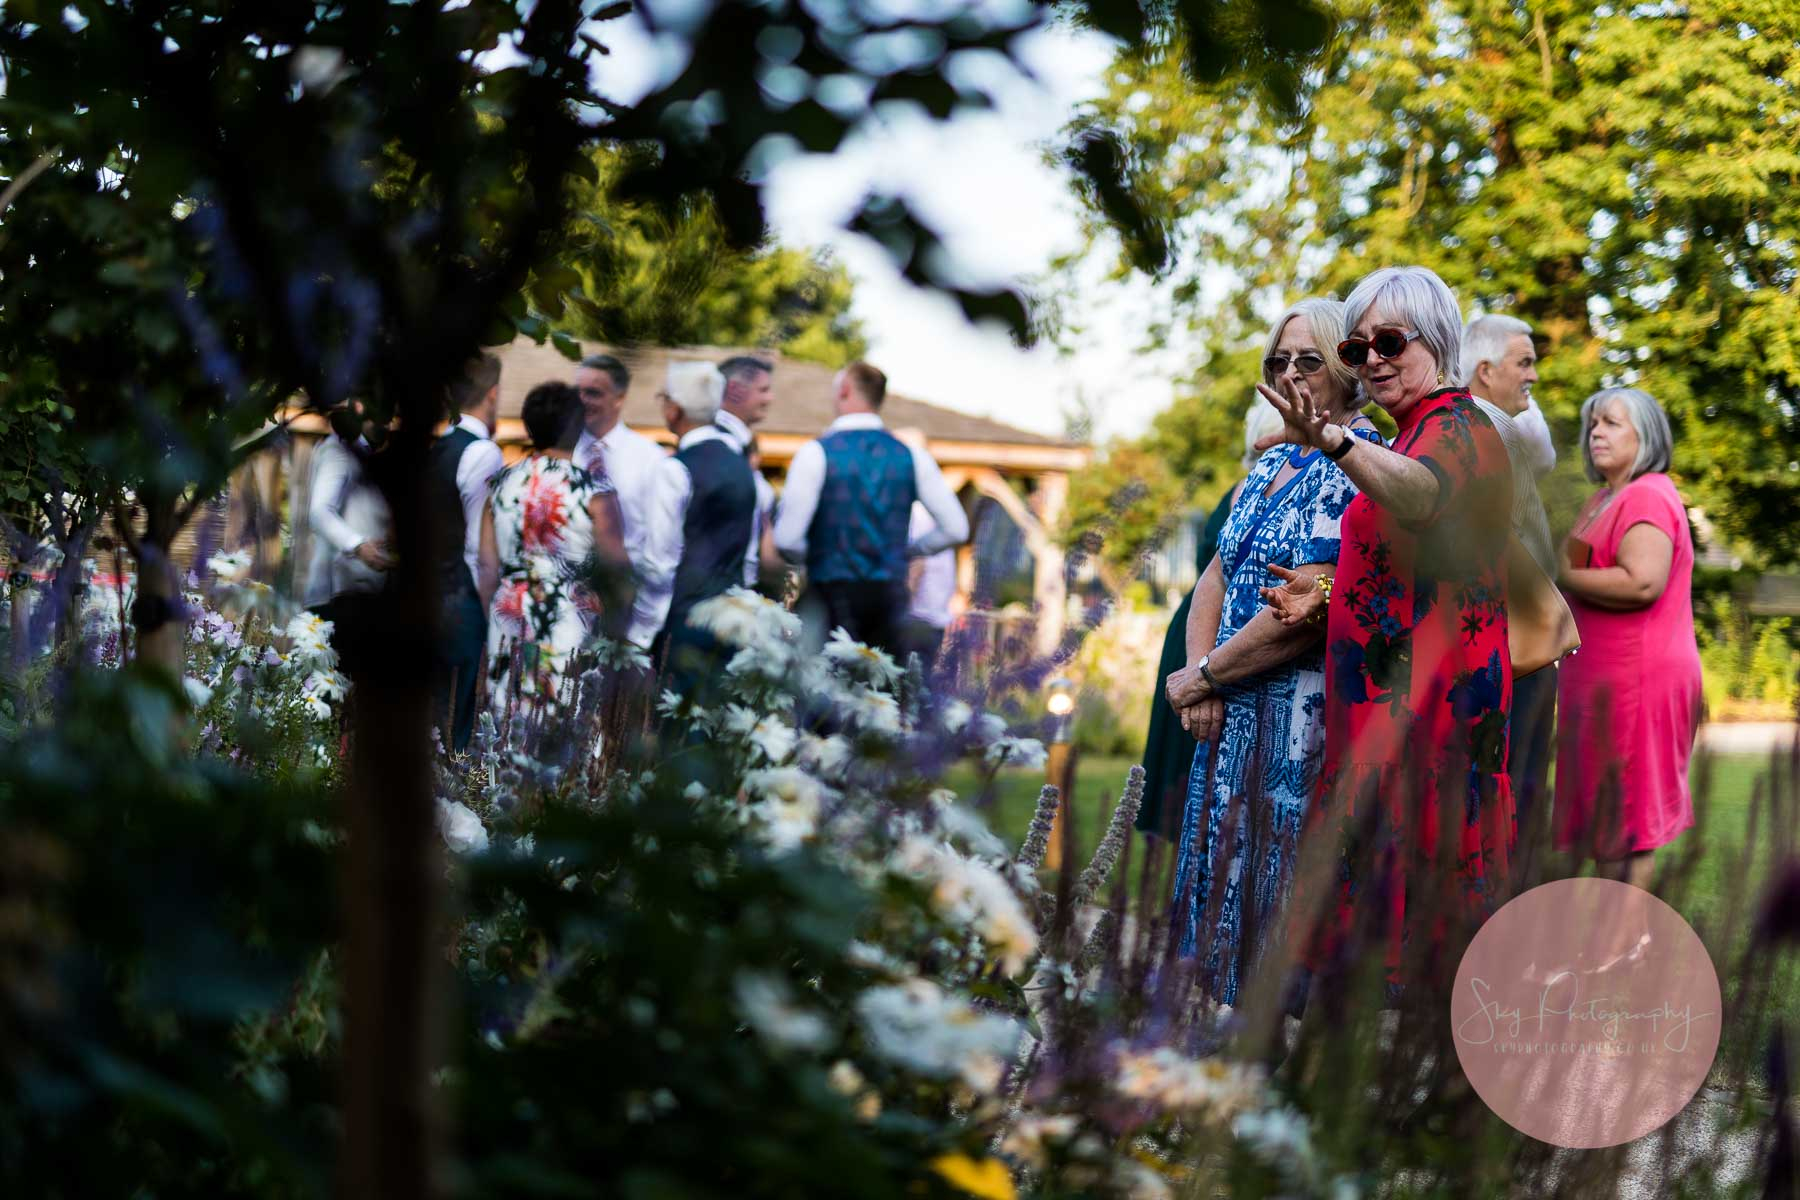 Wedding guests admiring the gardens at Bassmead Barns